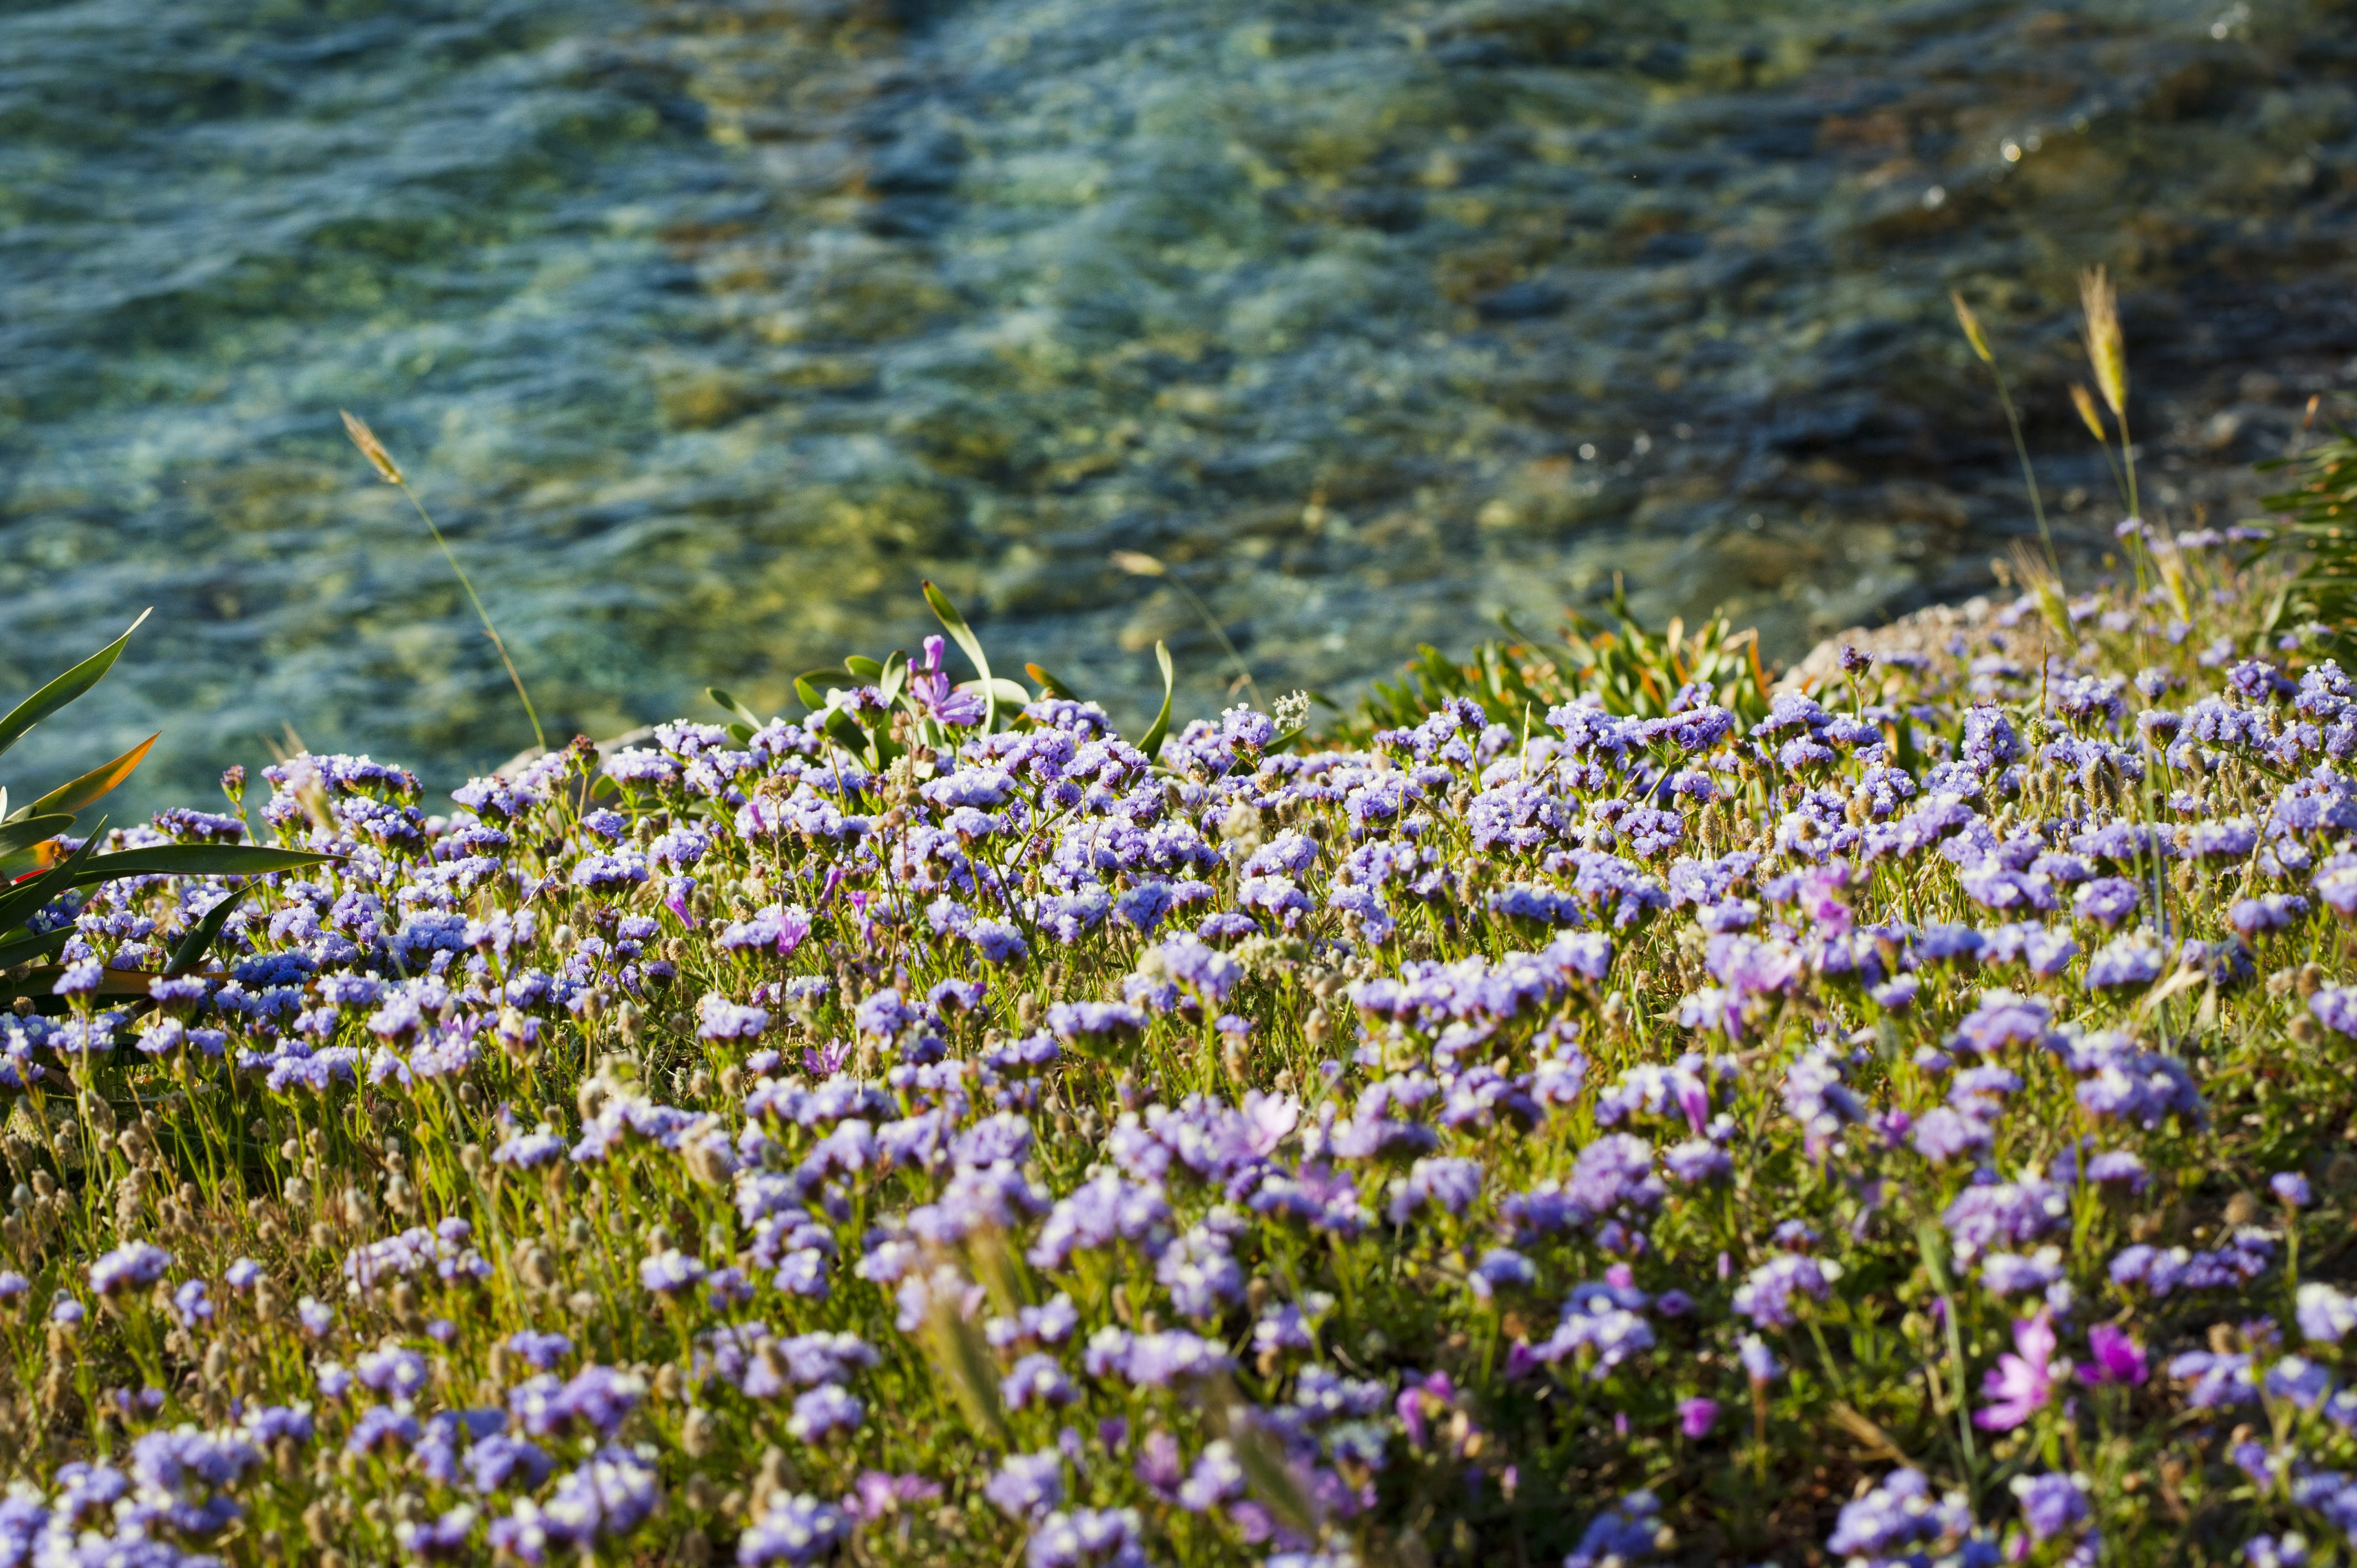 Photo of Field of Flowers Near Water